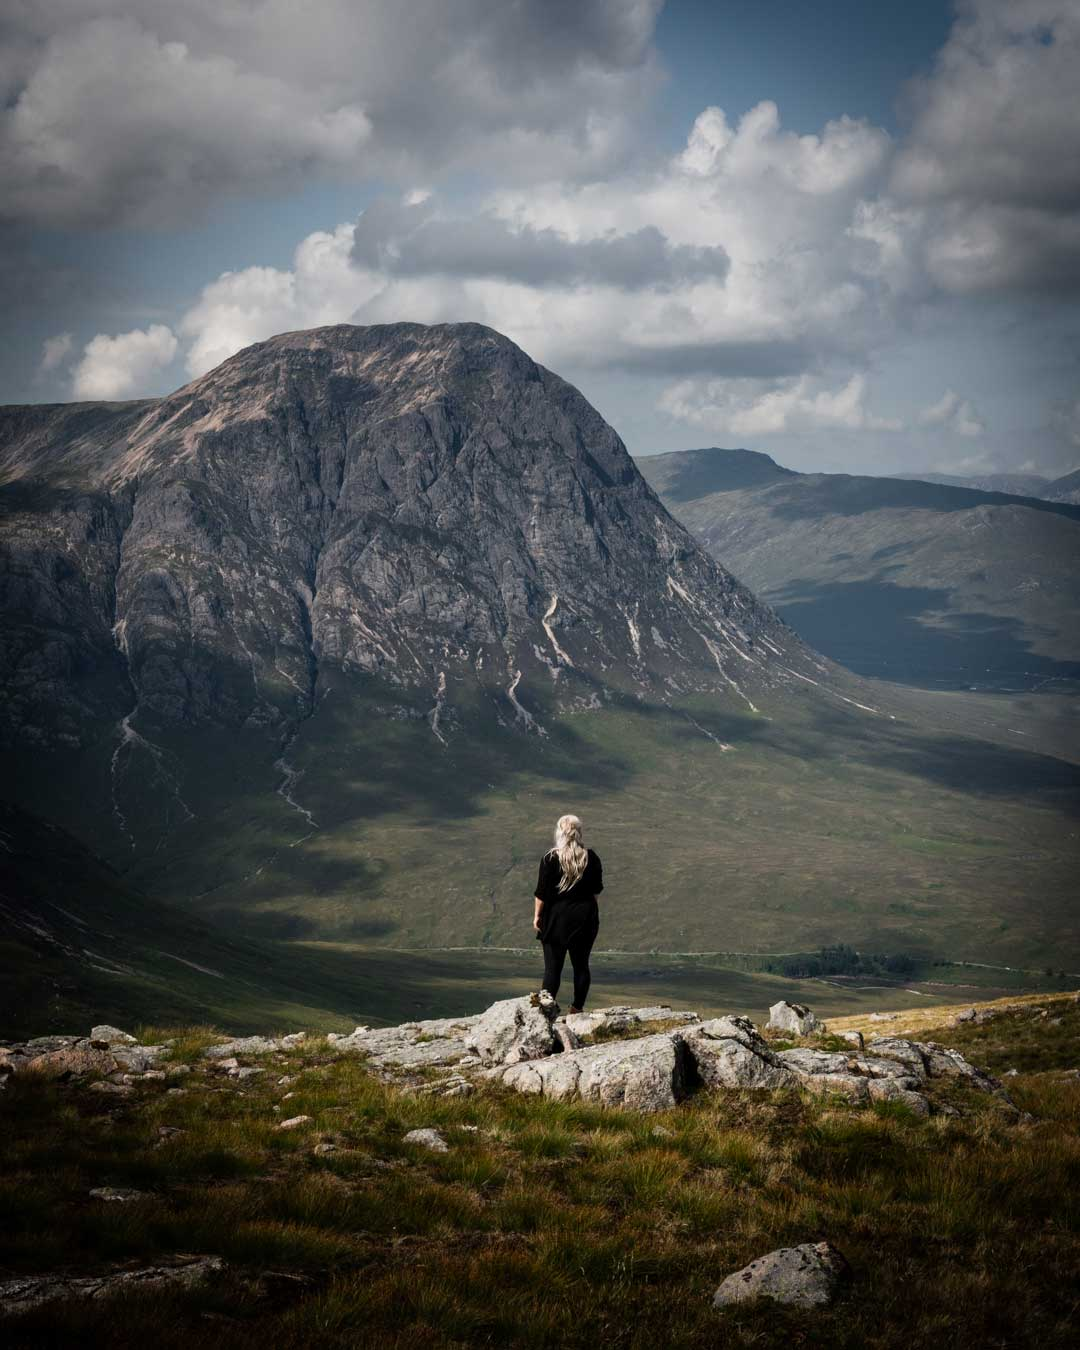 Surrounded by mountains in Glencoe, Scotland